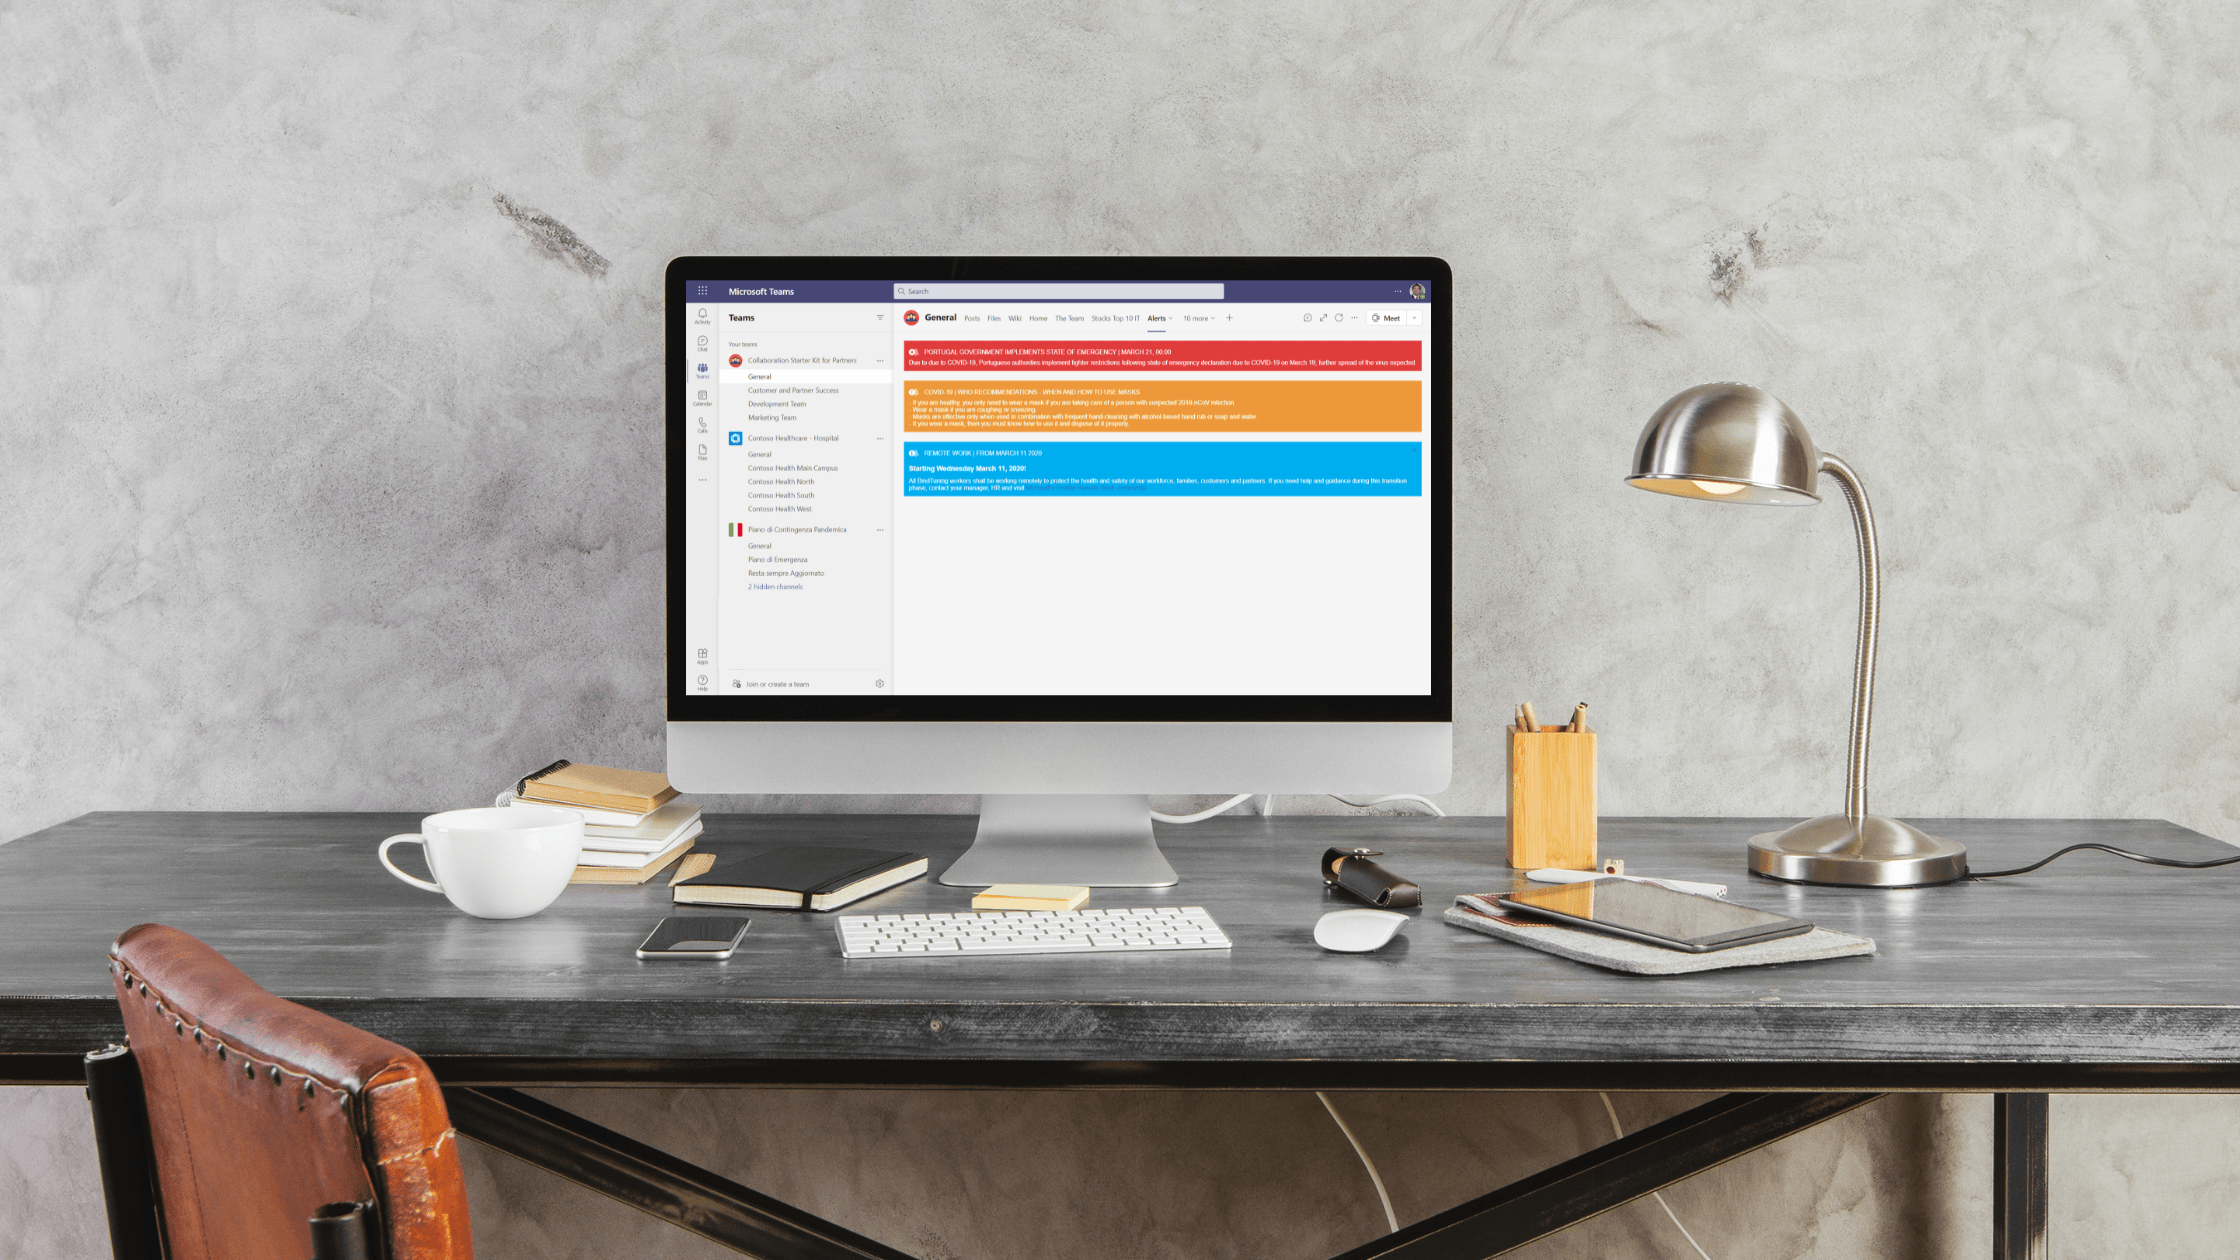 build-your-workspace-extend-alerts-to-teams-chats-and-outlook-email